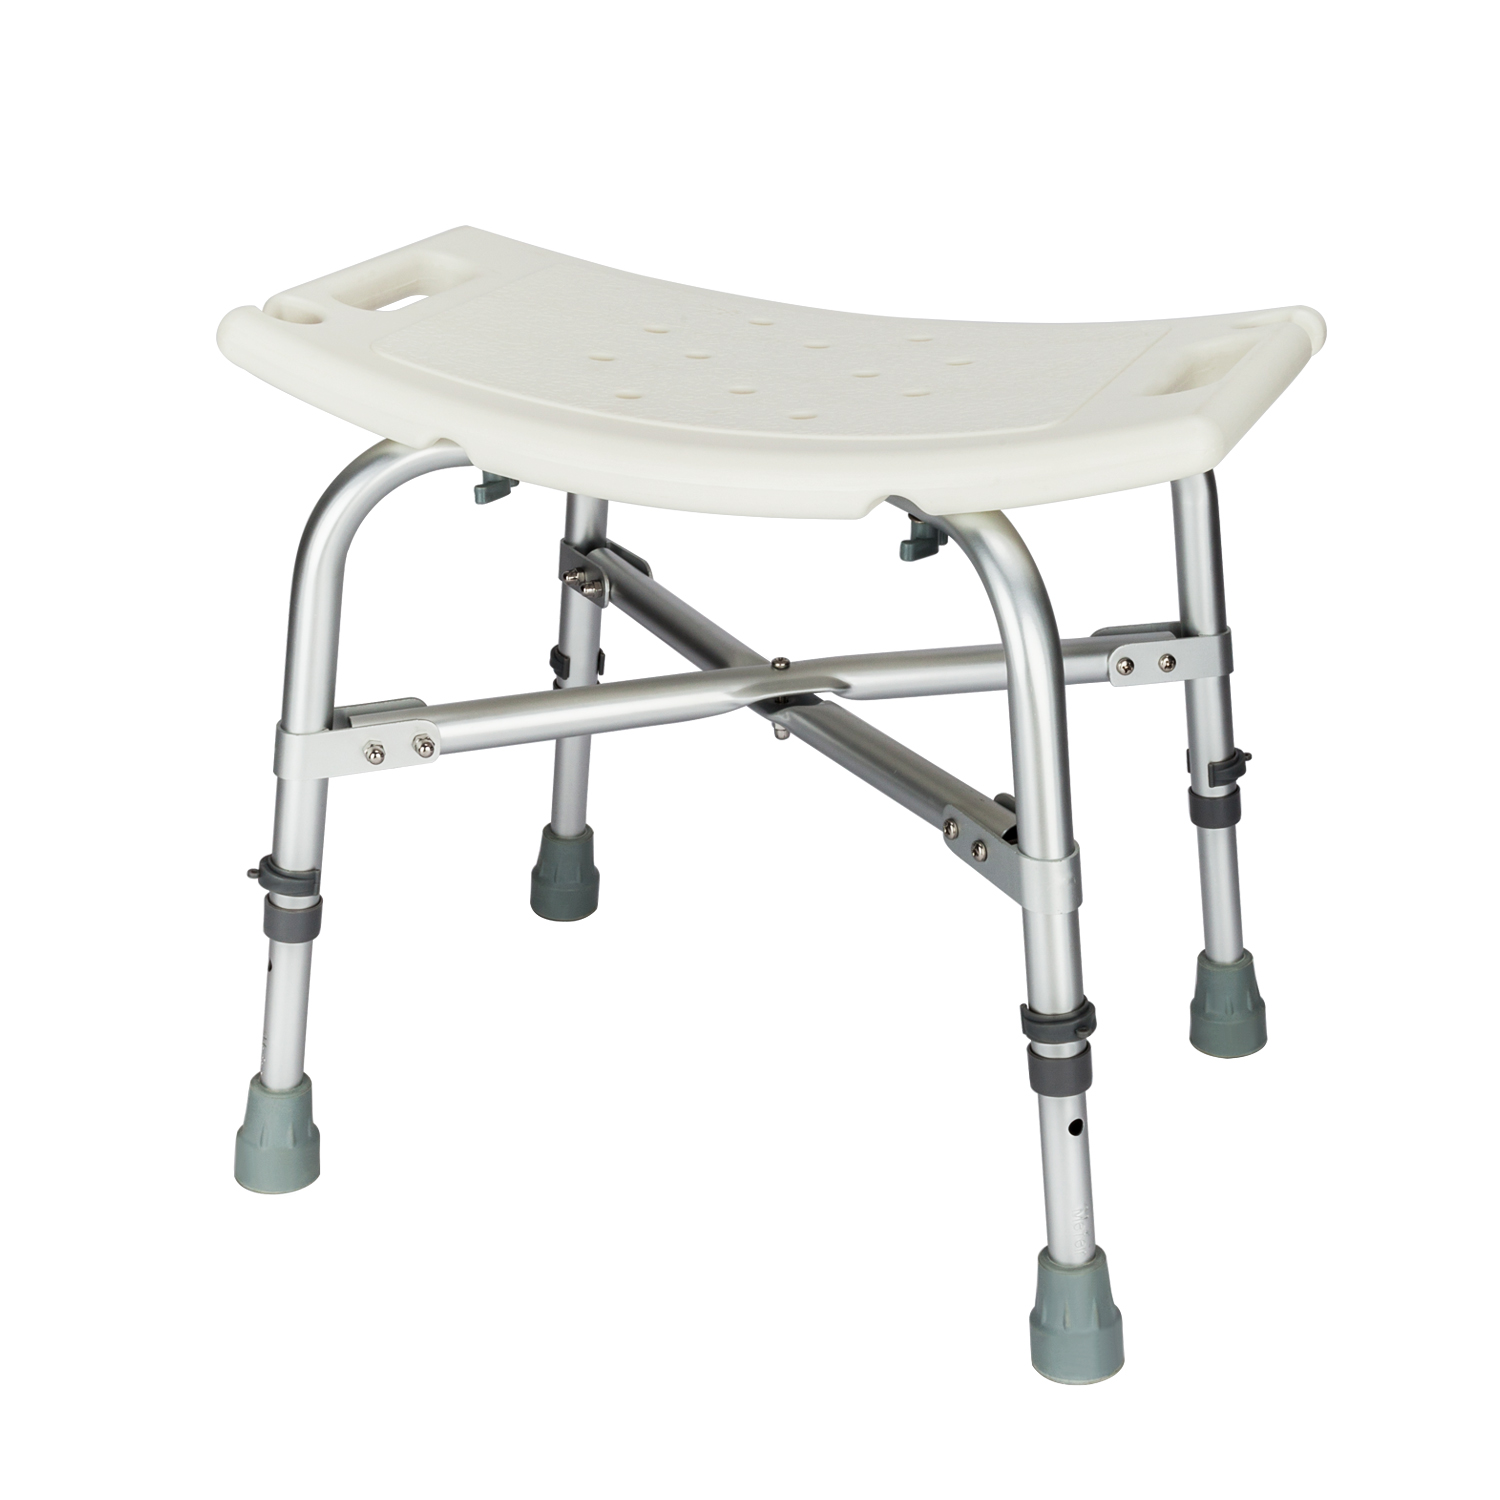 Adjustable Medical Heavy-duty Bathtub Chair Bath Bench Shower Stool ...